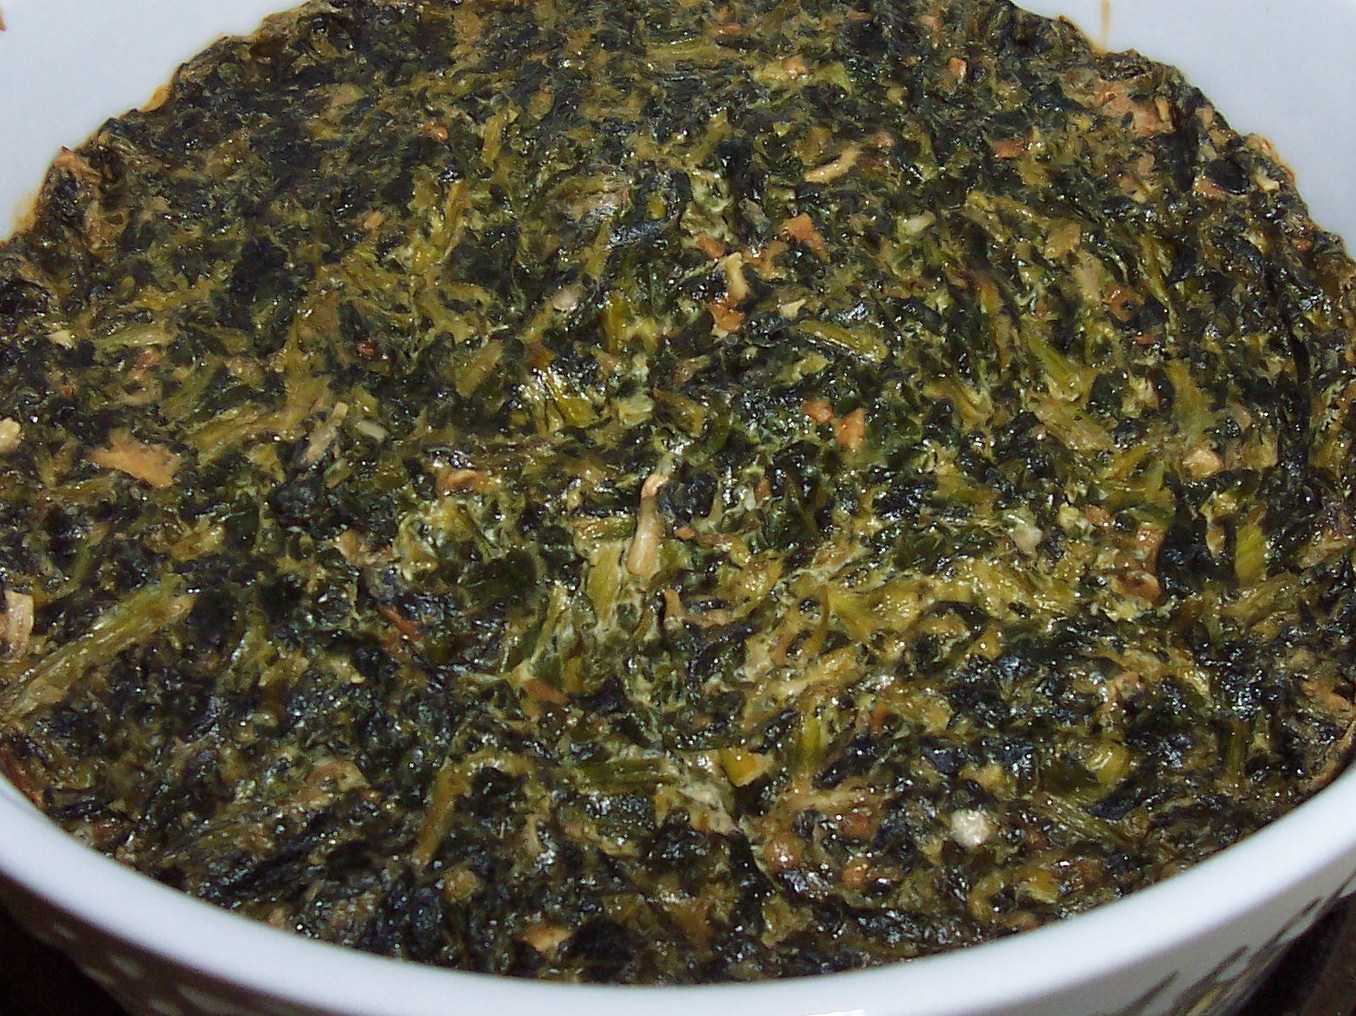 Tasty Spinach Baby Food Recipes, Make Spinach for Homemade ...